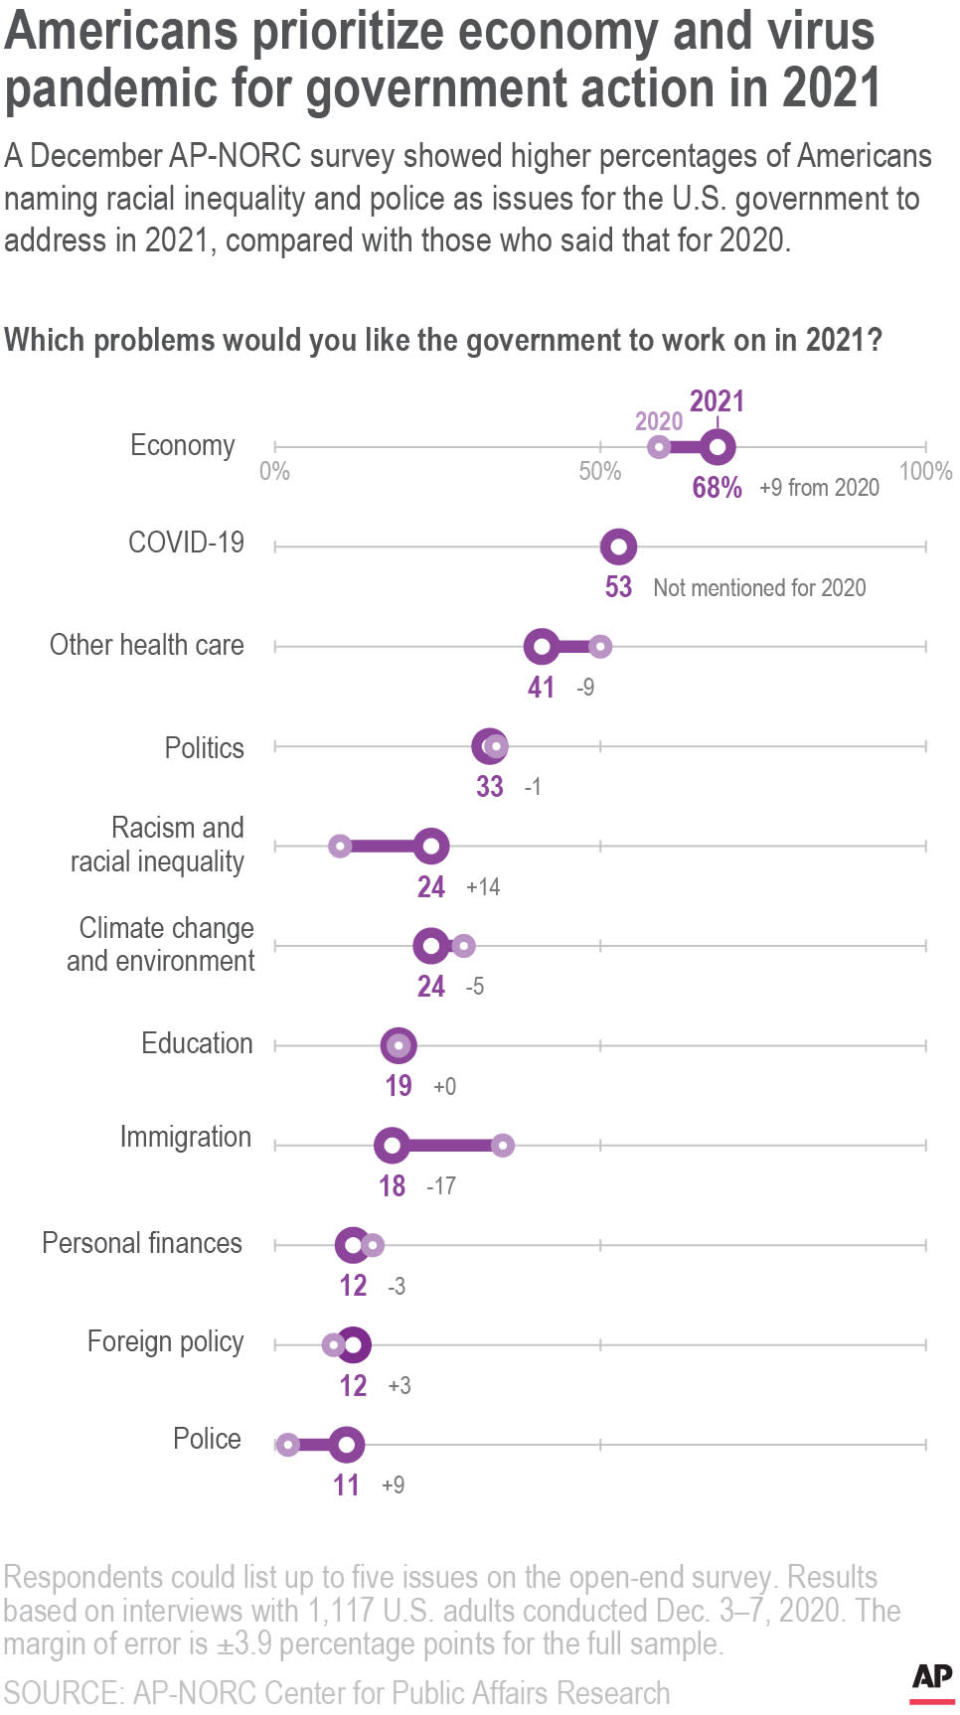 A December AP-NORC survey showed higher percentages of Americans naming racial inequality and police as issues for the U.S. government to address in 2021, compared with those who said that for 2020.